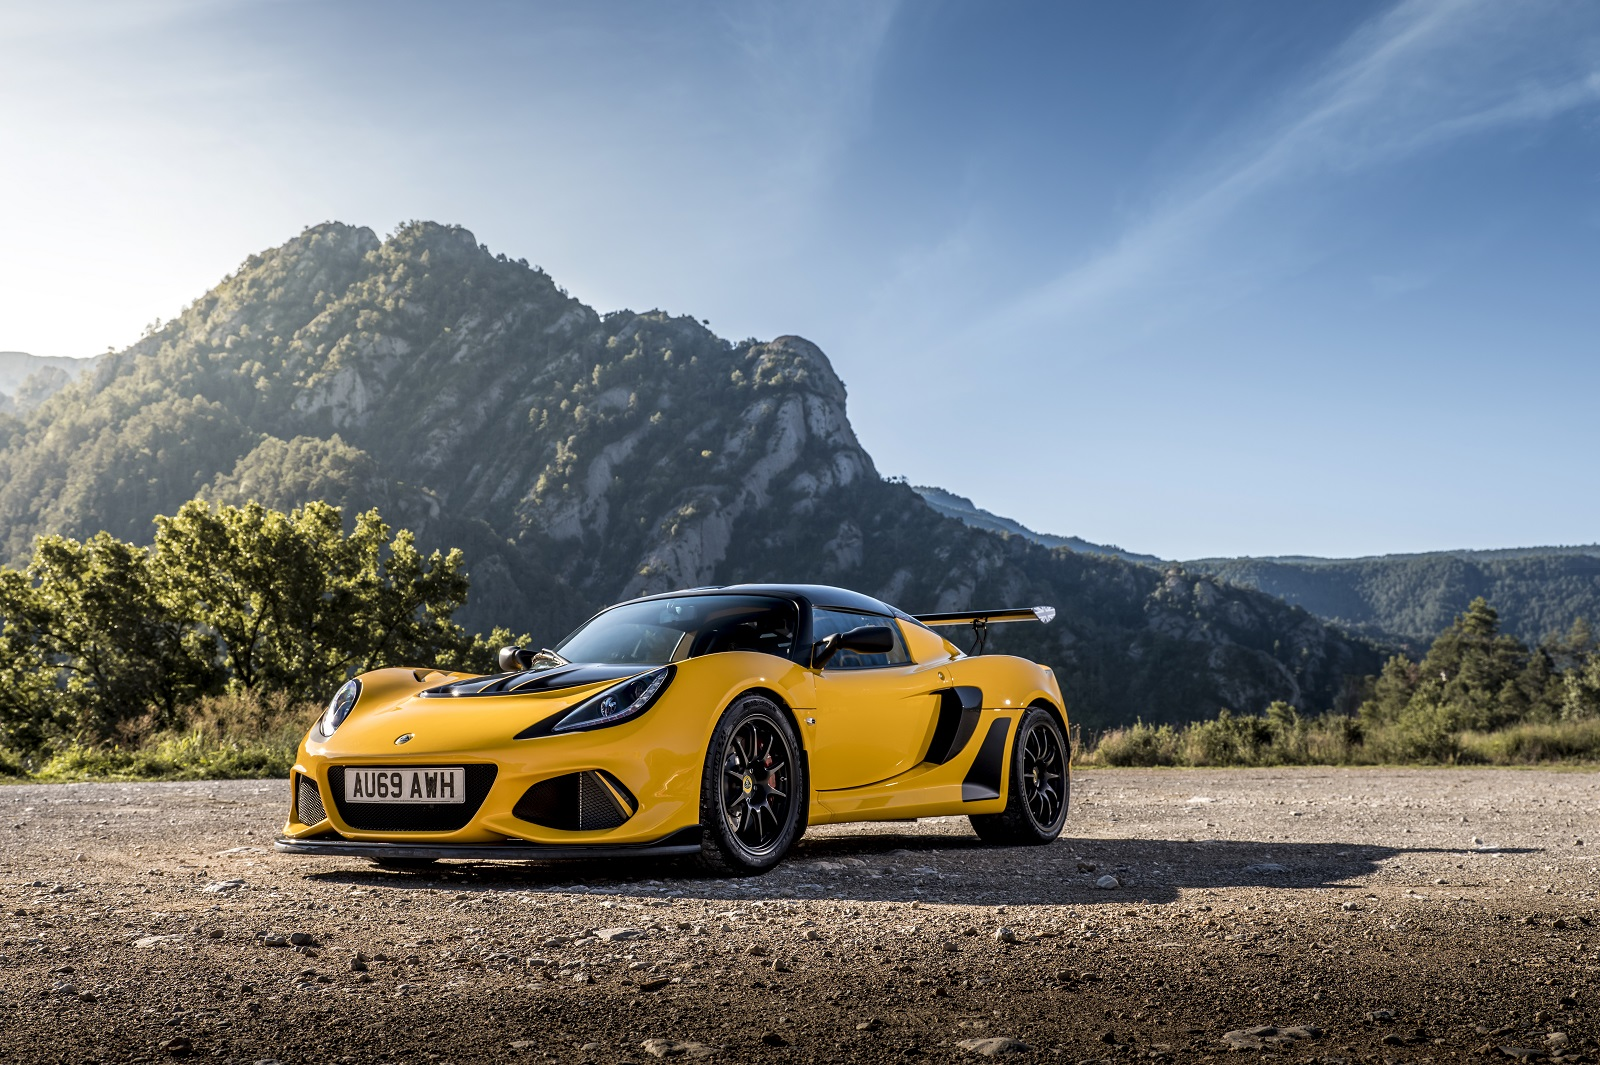 65793_9859_Yellow_Exige_430_Cup_040